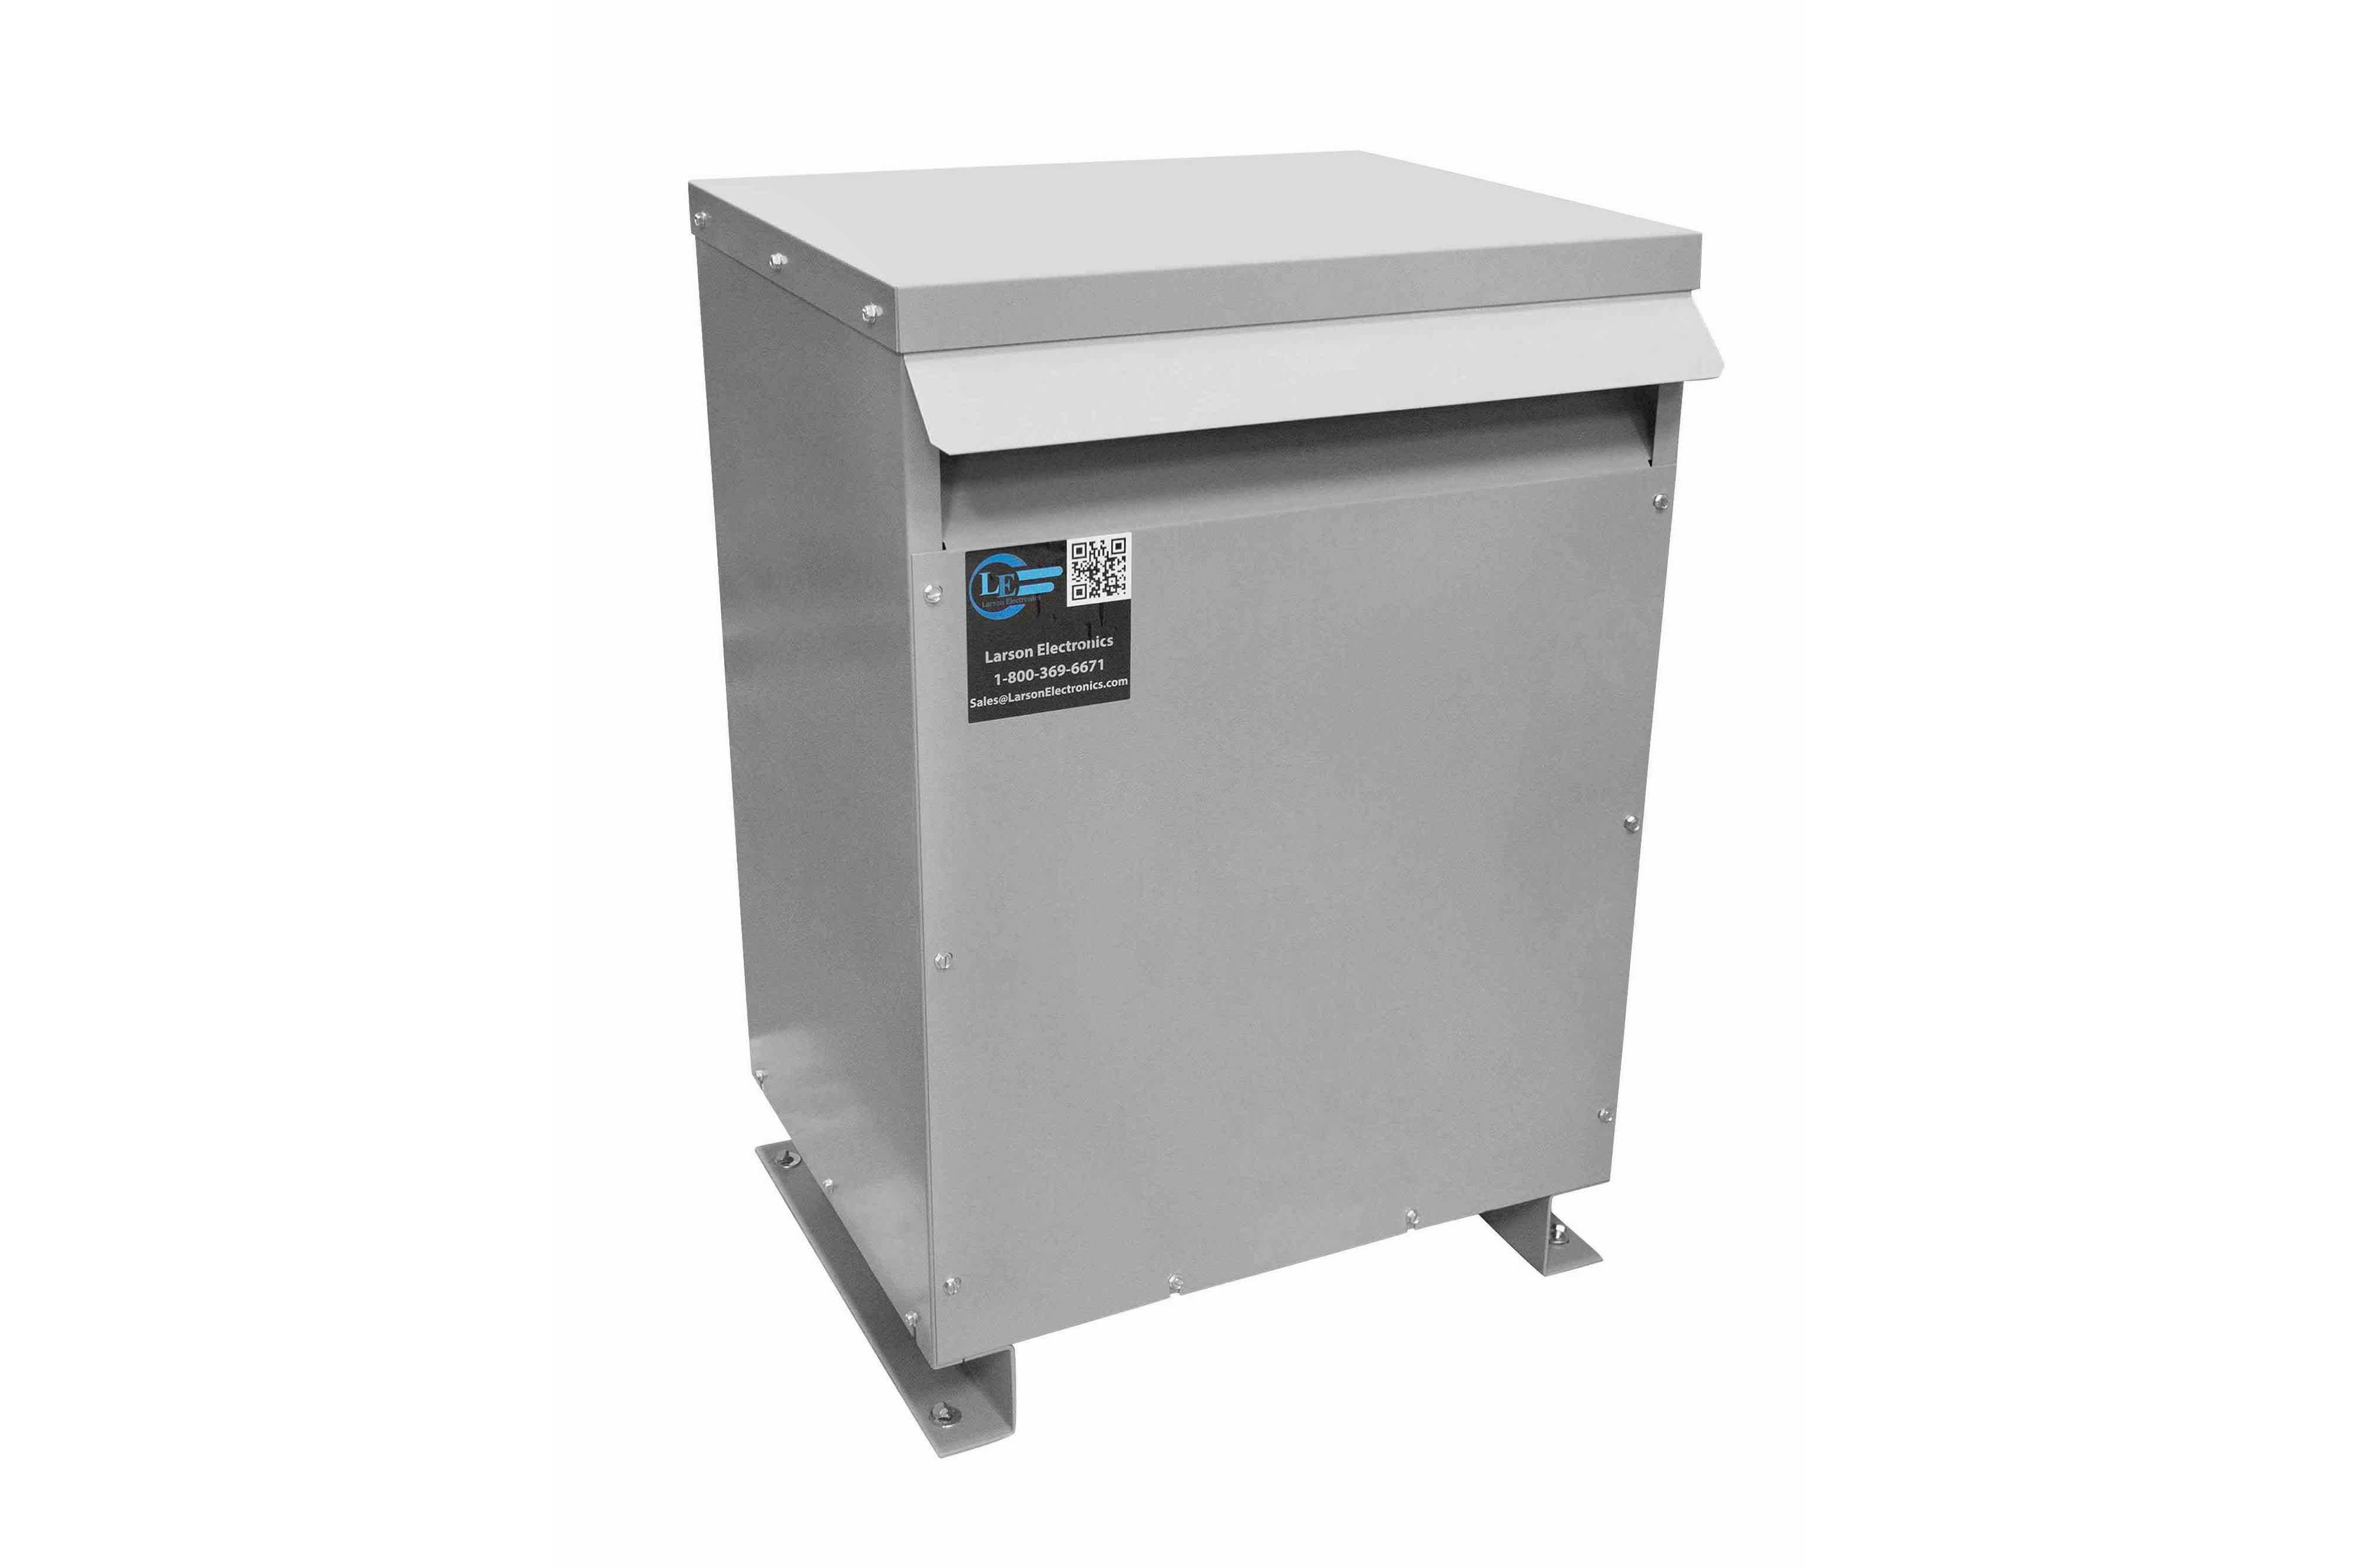 27 kVA 3PH Isolation Transformer, 208V Delta Primary, 480V Delta Secondary, N3R, Ventilated, 60 Hz